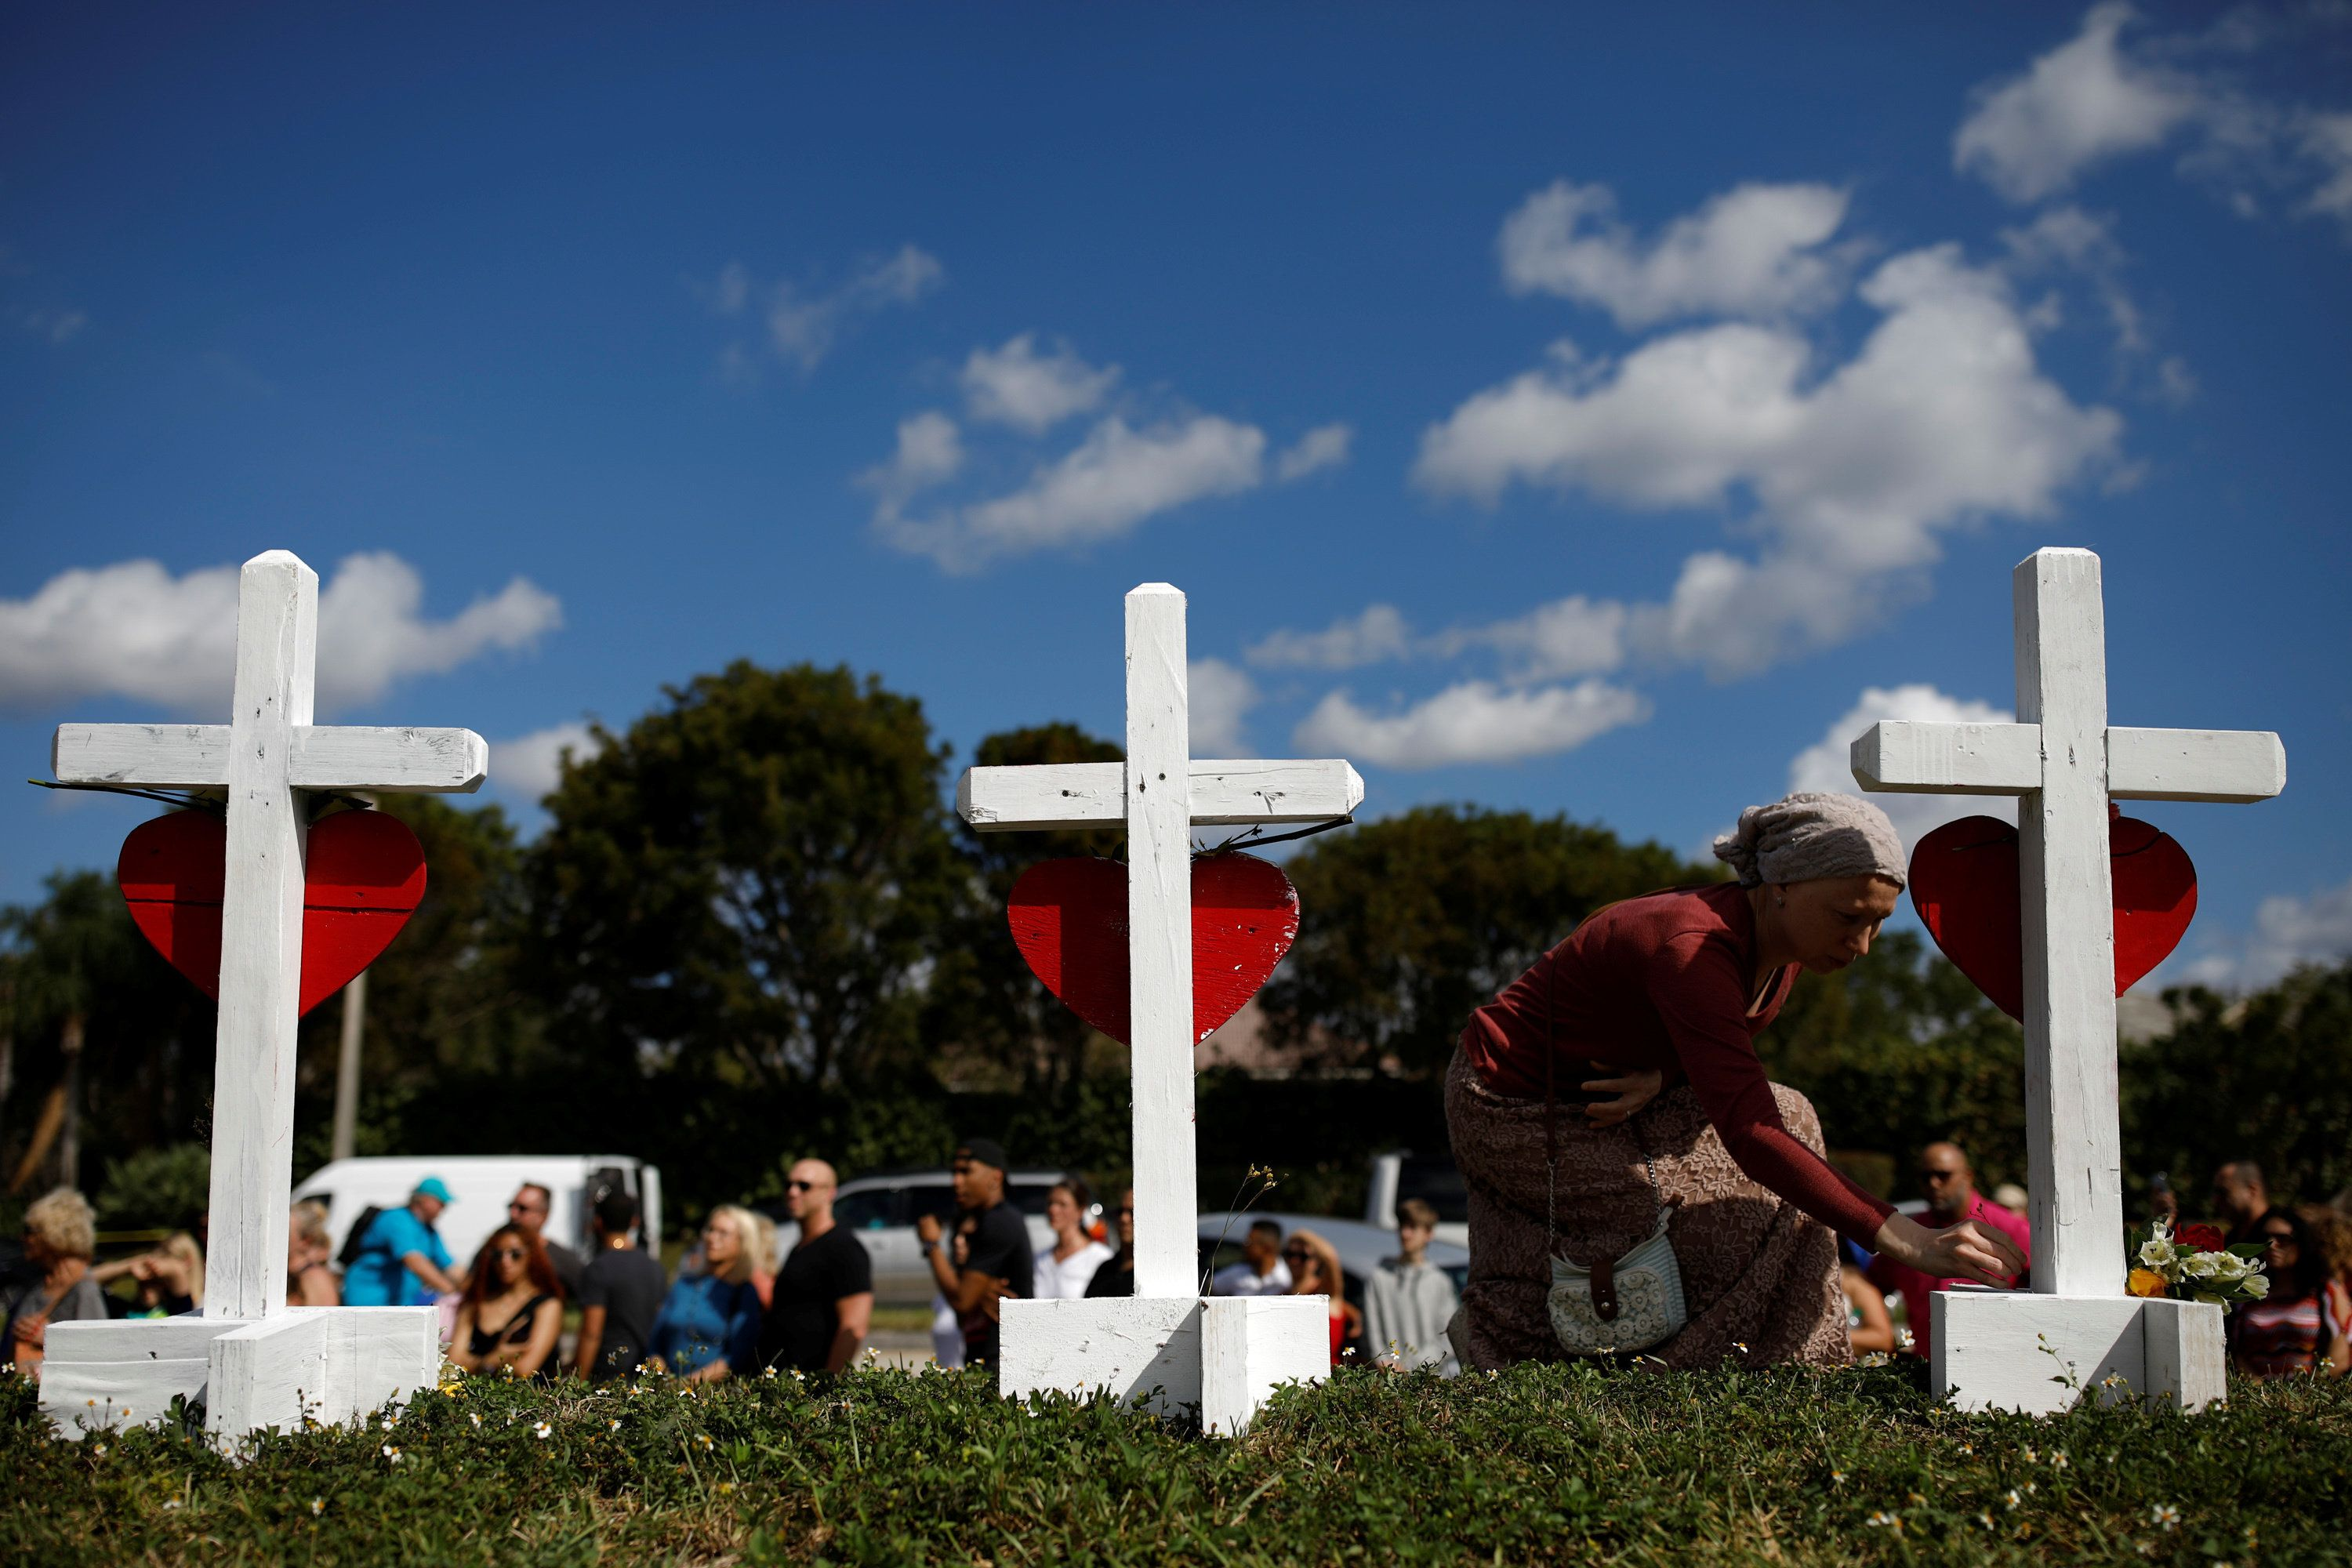 Elena Wright (L) mourns while she puts flowers at the crosses placed in front of the fence of the Marjory Stoneman Douglas High School to commemorate the victims of the mass shooting, in Parkland, Florida, U.S., February 18, 2018. REUTERS/Carlos Garcia Rawlins